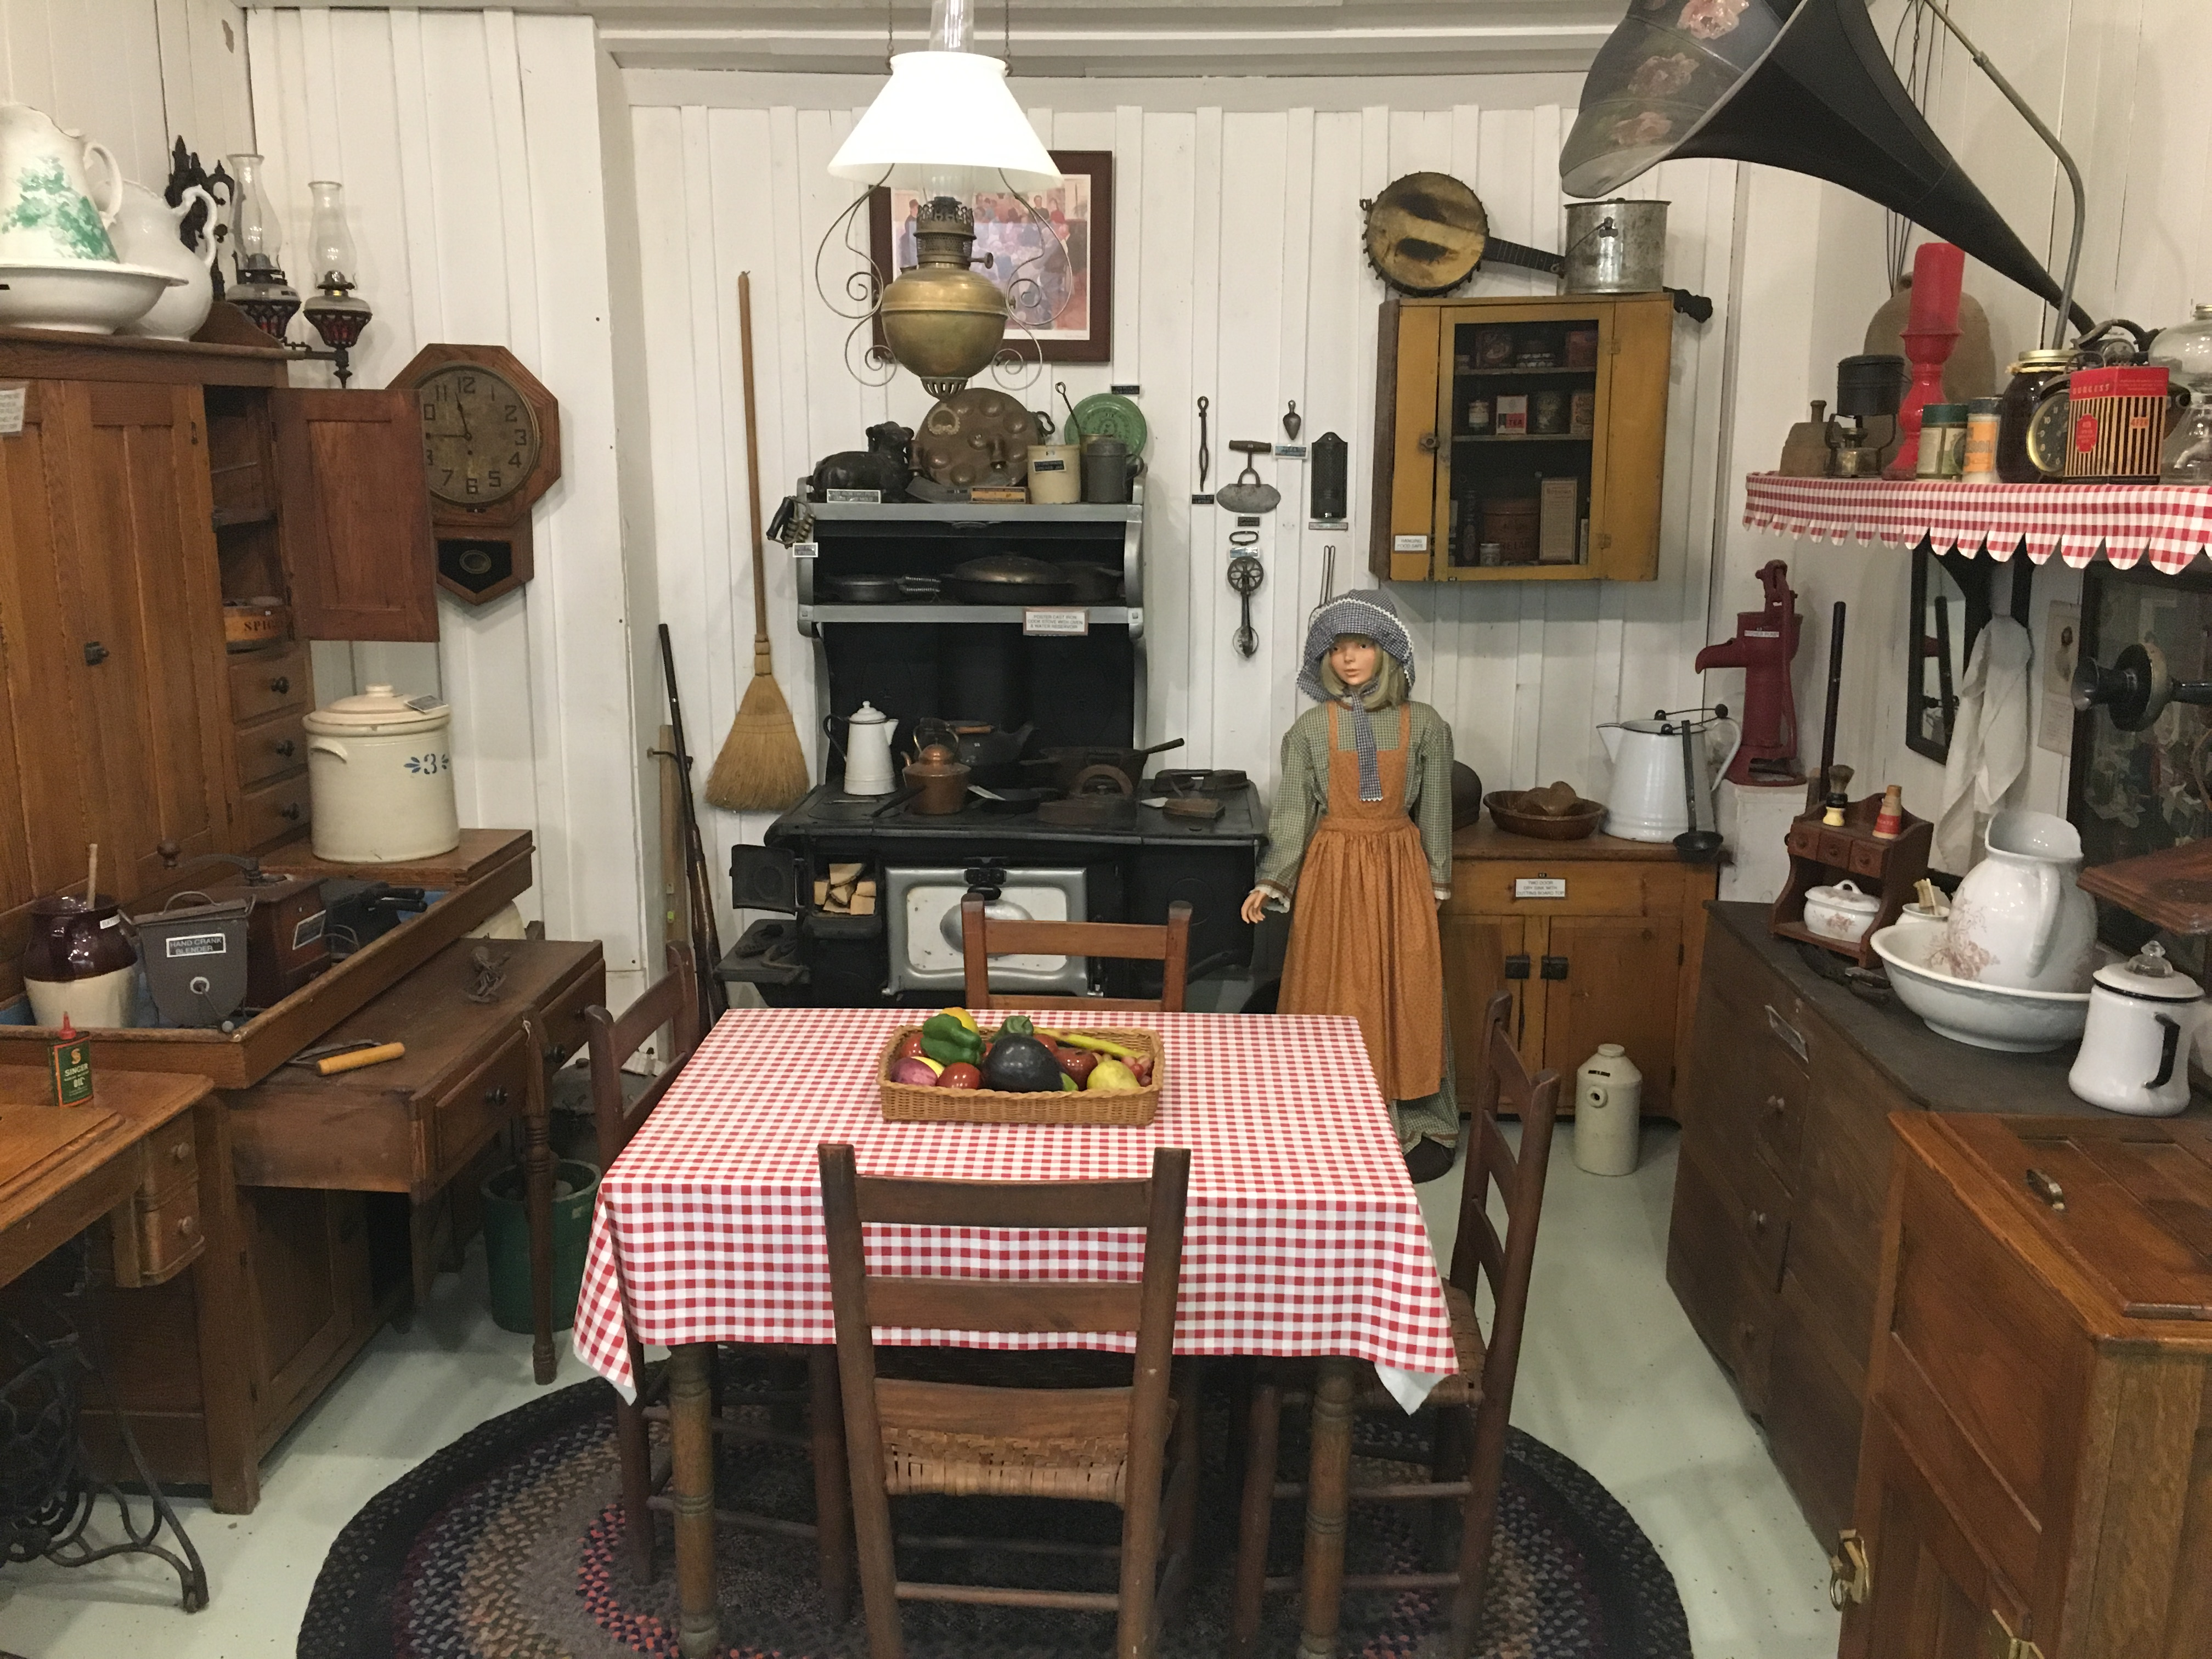 The kitchen of the early 1900s began to look more light today's modern kitchens, with appliances such as stoves and ice boxes.